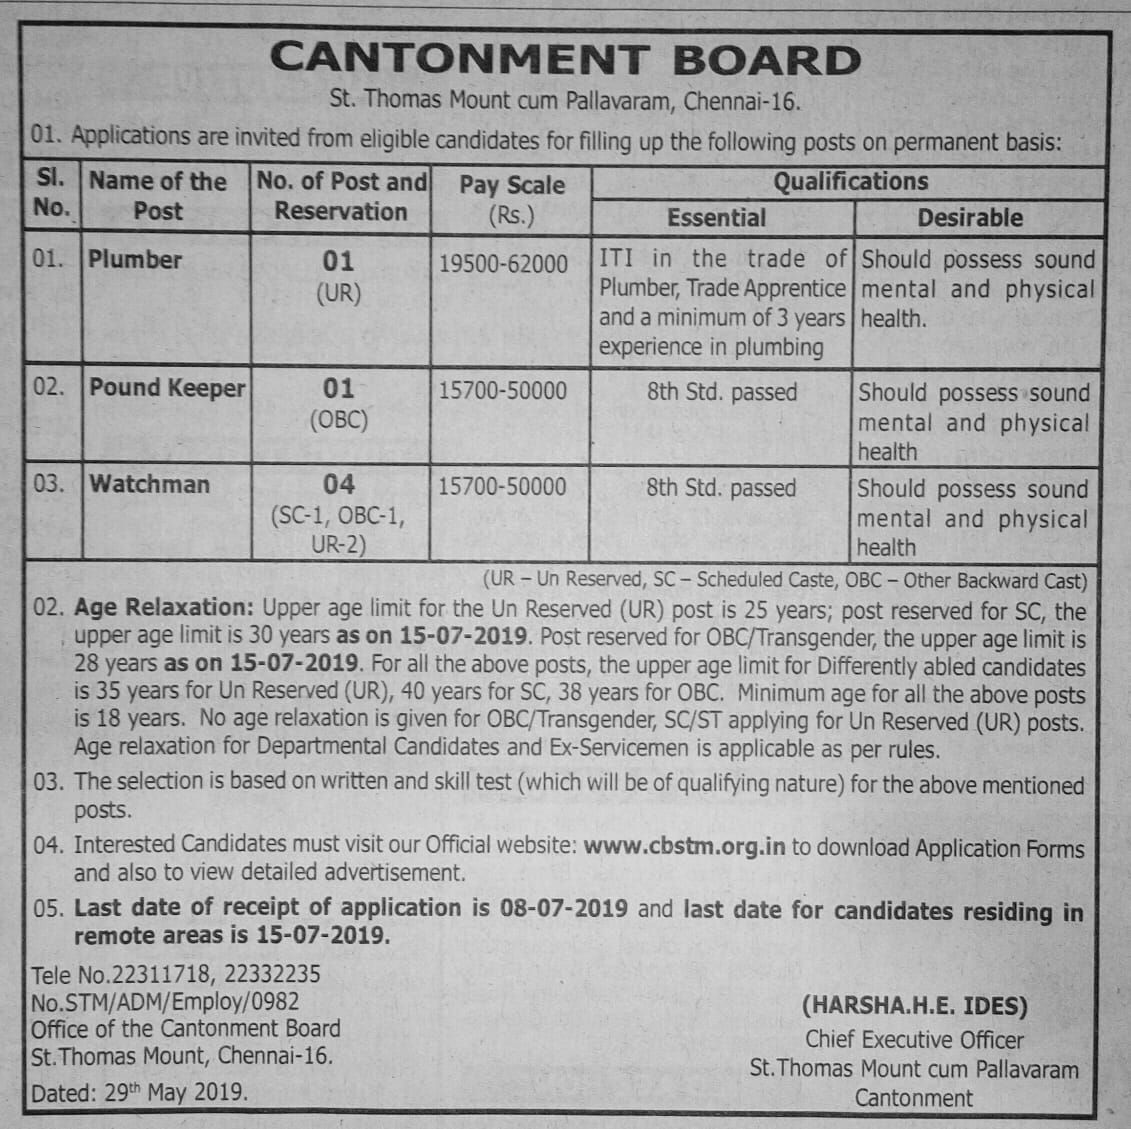 St. Thomas Mount Cantonment Board Plumber, Pound Keeper